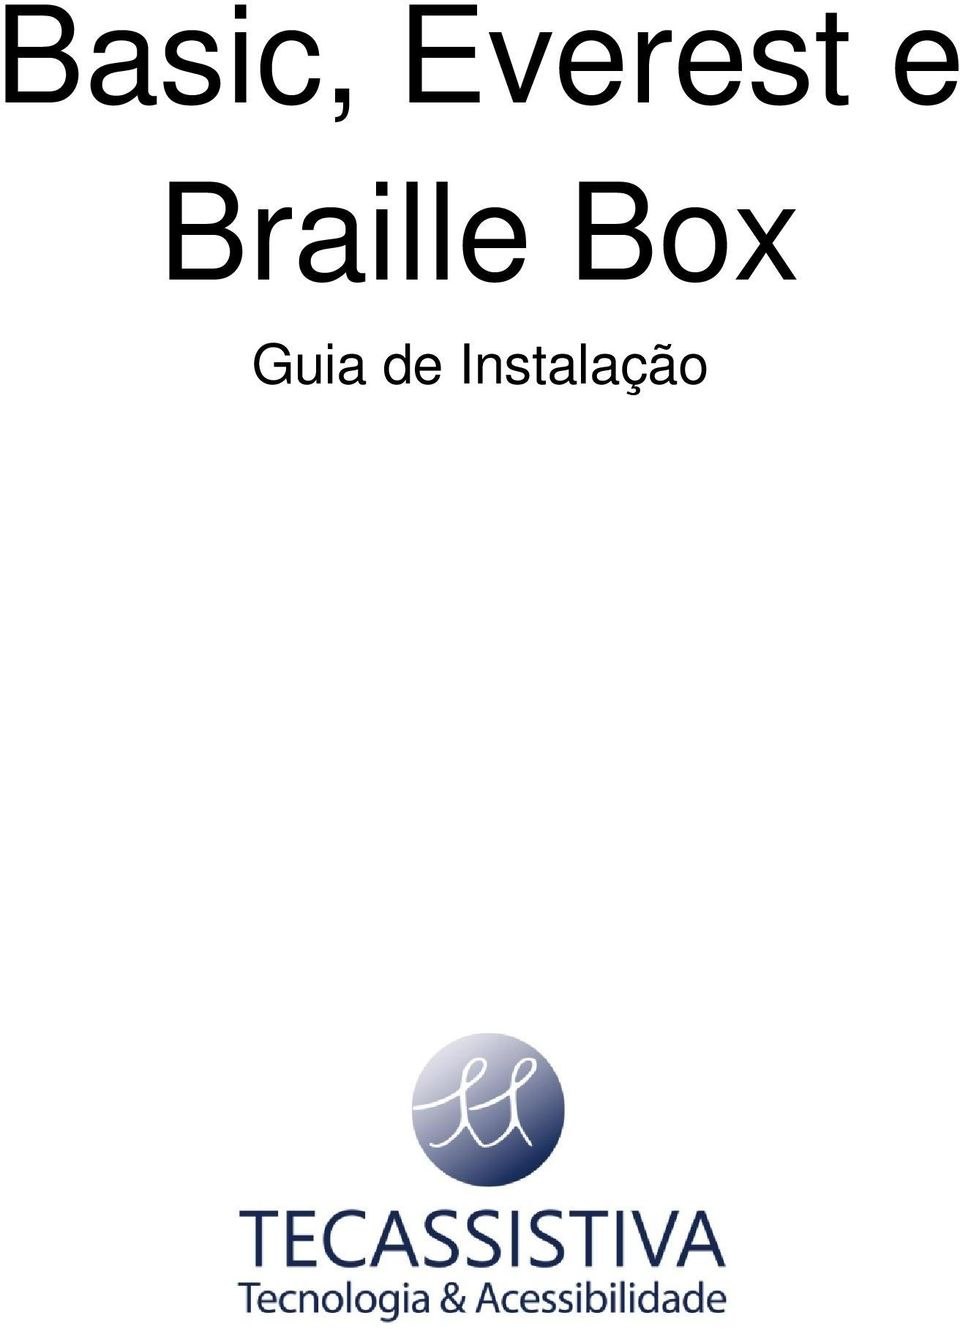 Braille Box